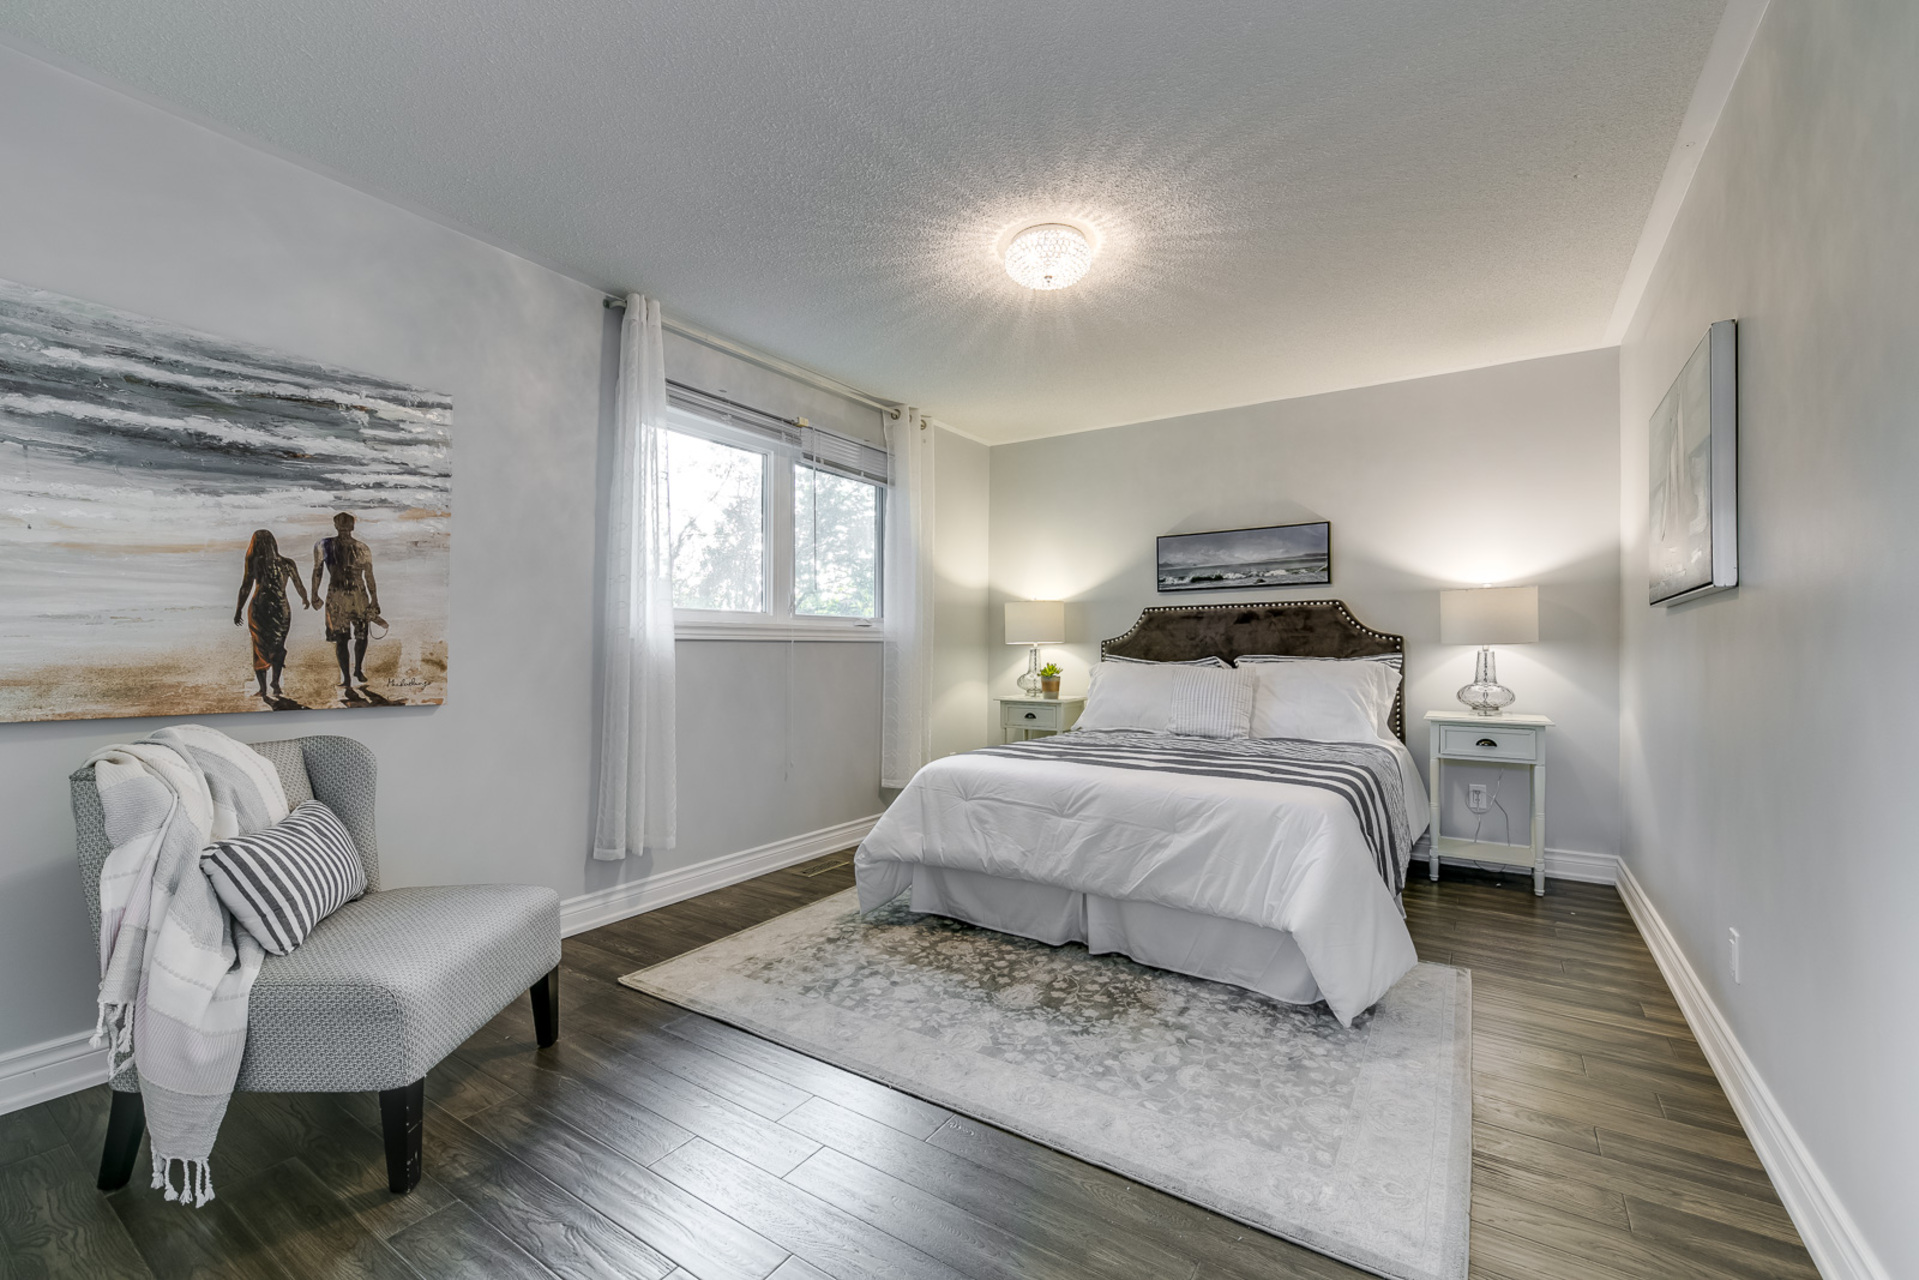 mls-34 at 4246 Wakefield Crescent, Creditview, Mississauga